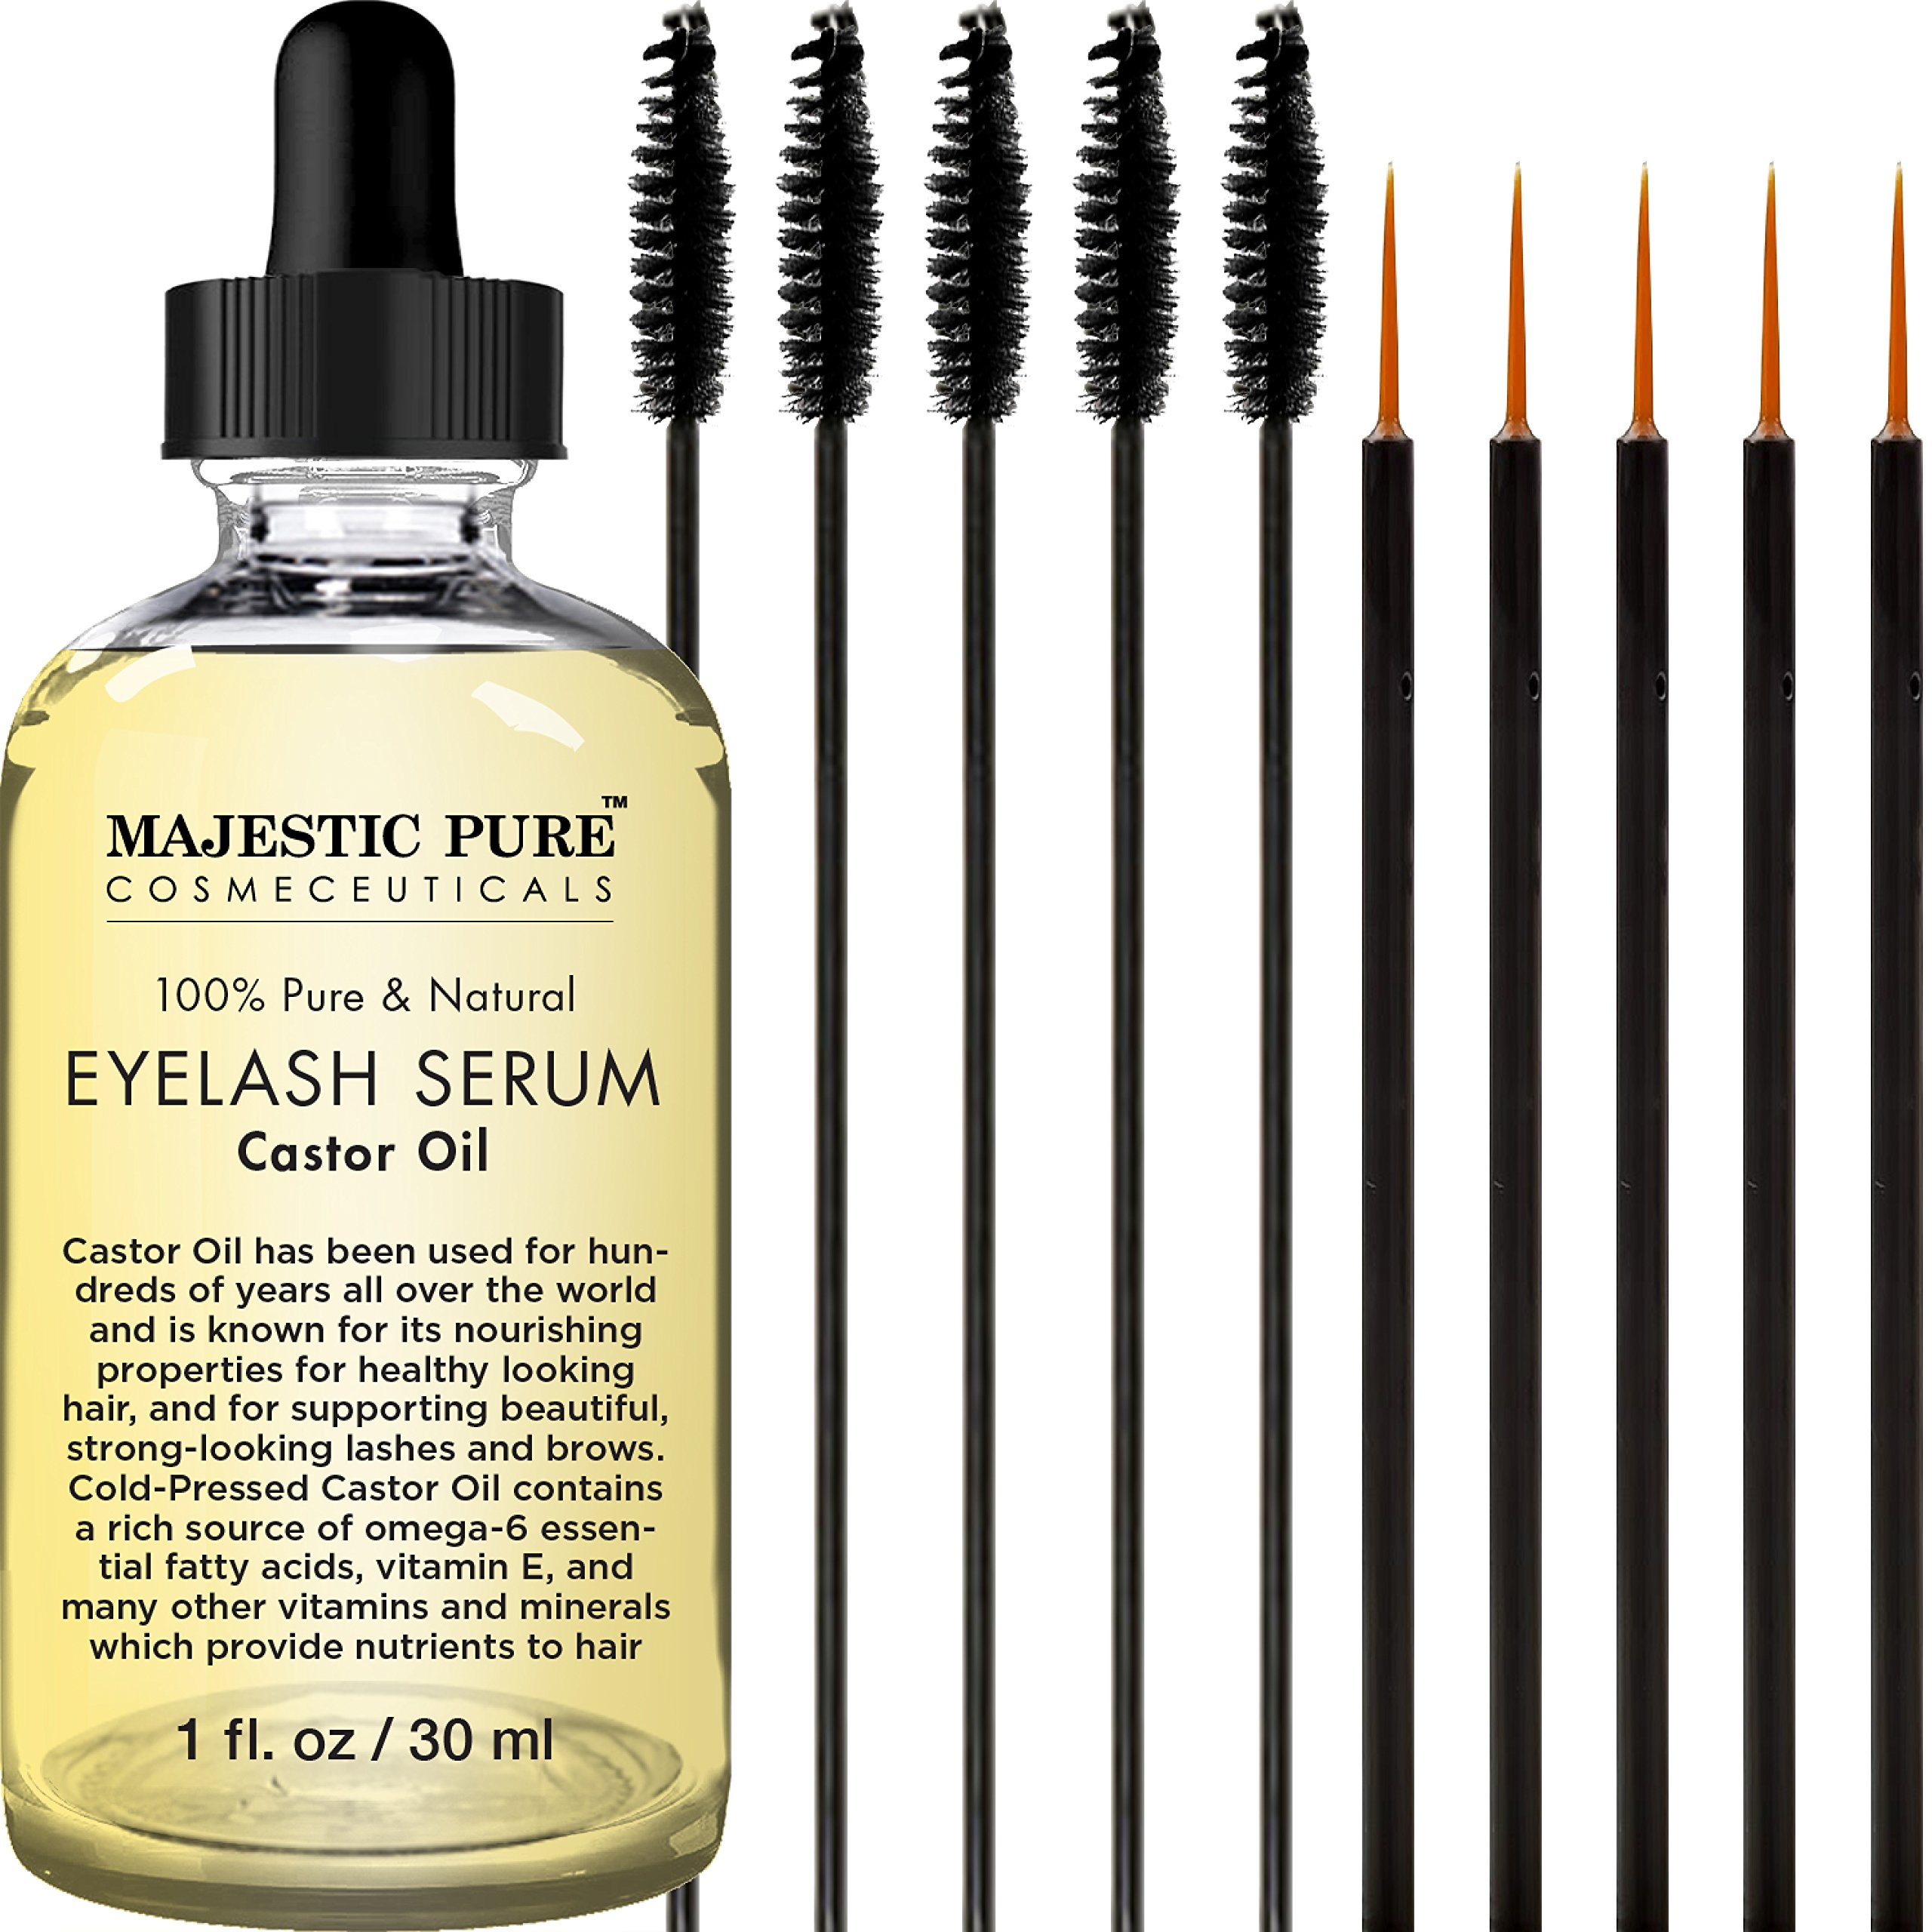 Majestic Pure Castor Oil Eyelash Serum, Pure and Natural, Promotes Natural Eyebrows & Eyelash Growth, Free Set of Mascara Brush and Eyeliner Applicator - 1 fl oz by Majestic Pure (Image #1)